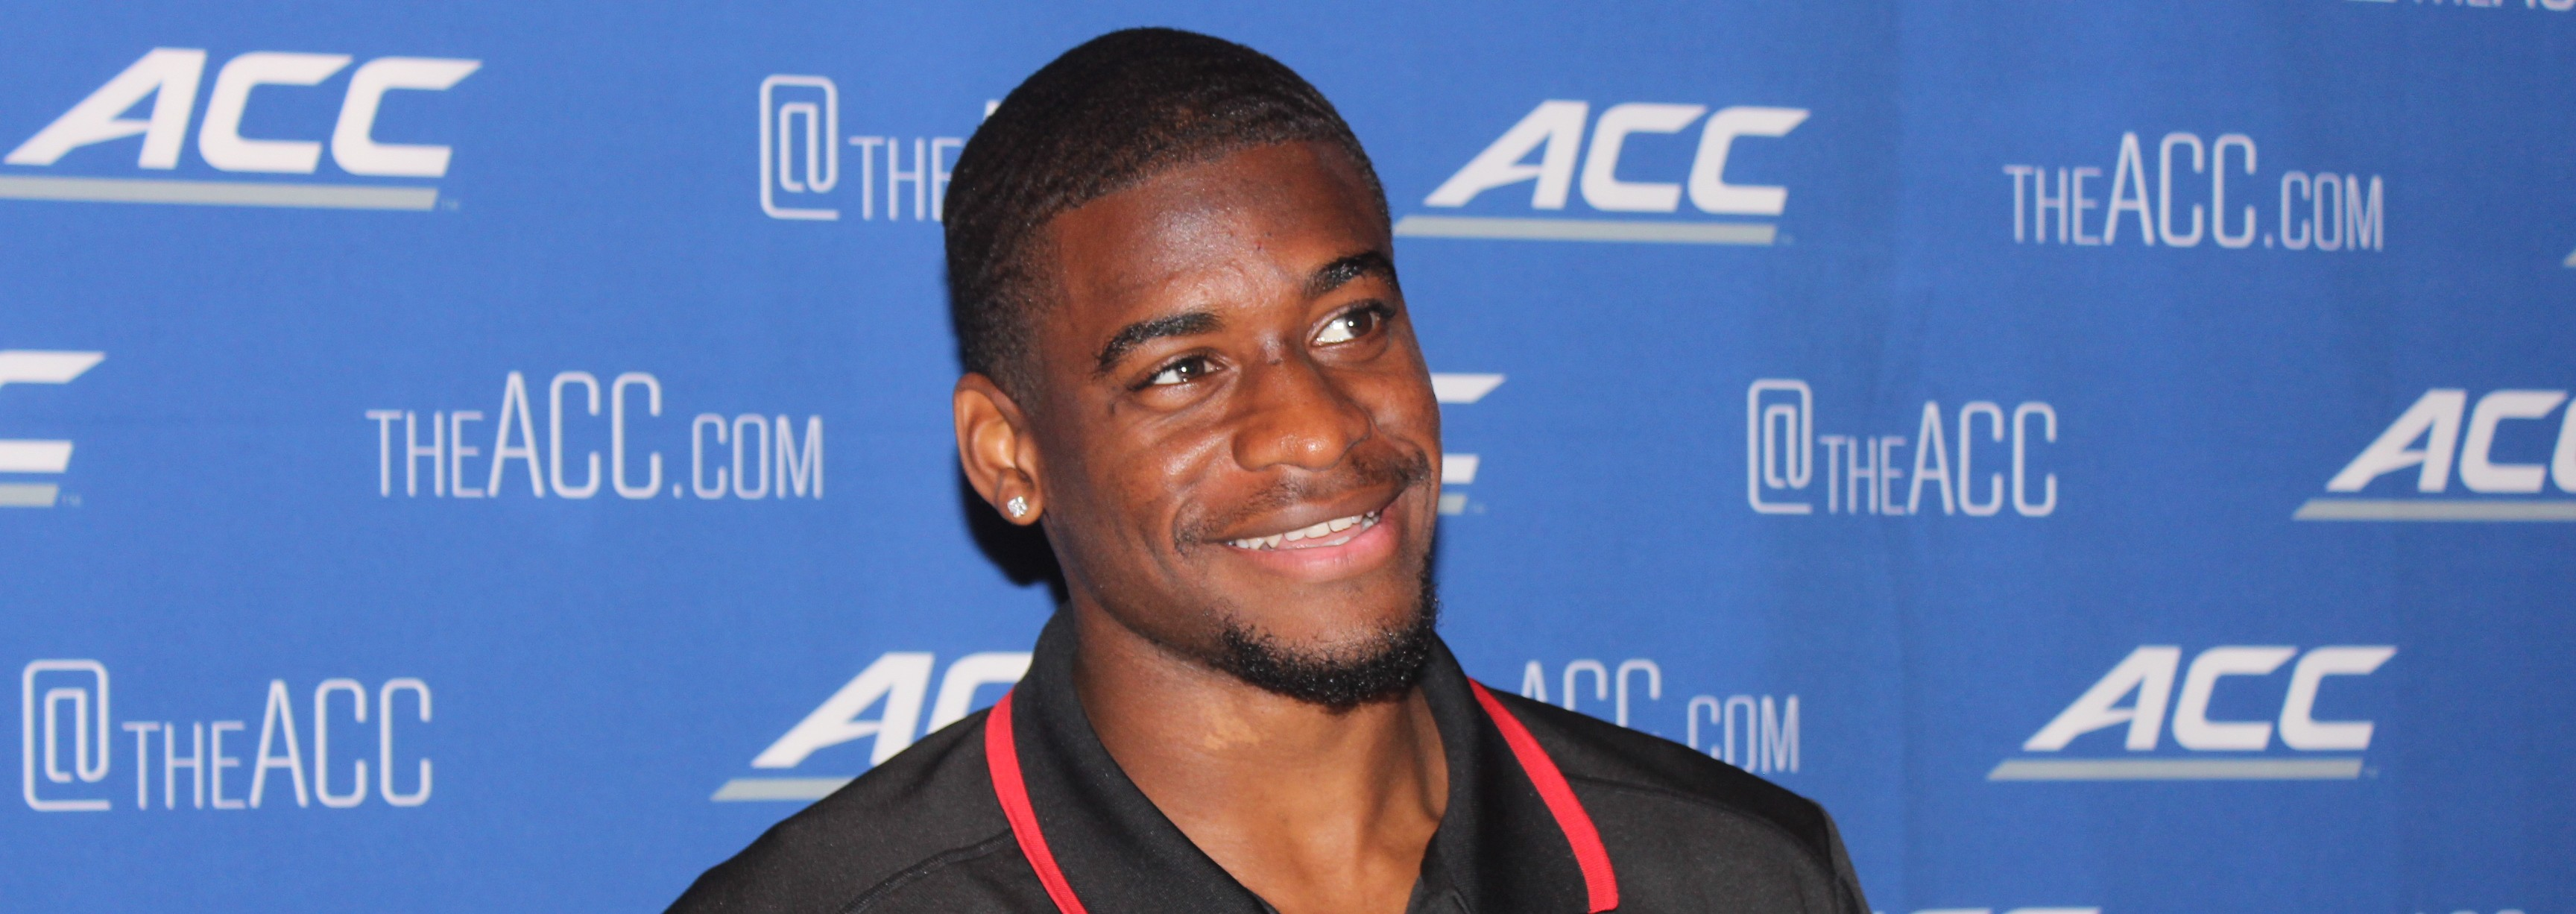 DeVante Parker 2014 ACC Media Kickoff Photo by Mark Blankenbaker Fitted